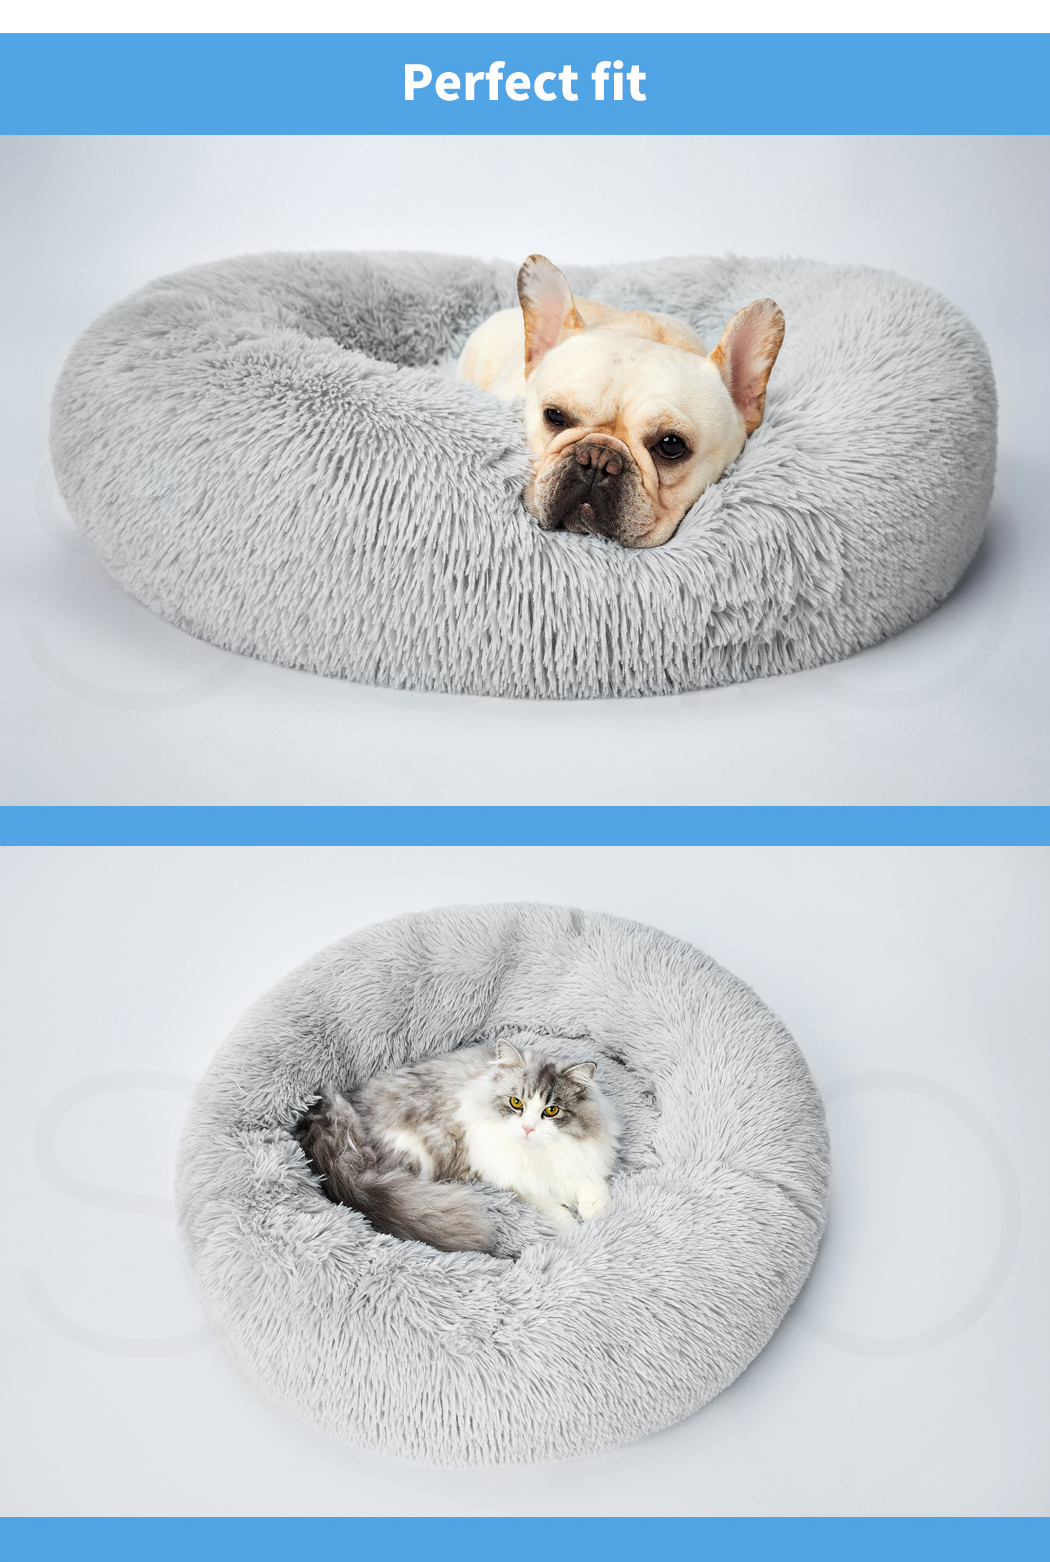 thumbnail 41 - PaWz Dog Calming Bed Cat Cave Pet Nest Soft Plush Warm Comfy Kennel Extra Large